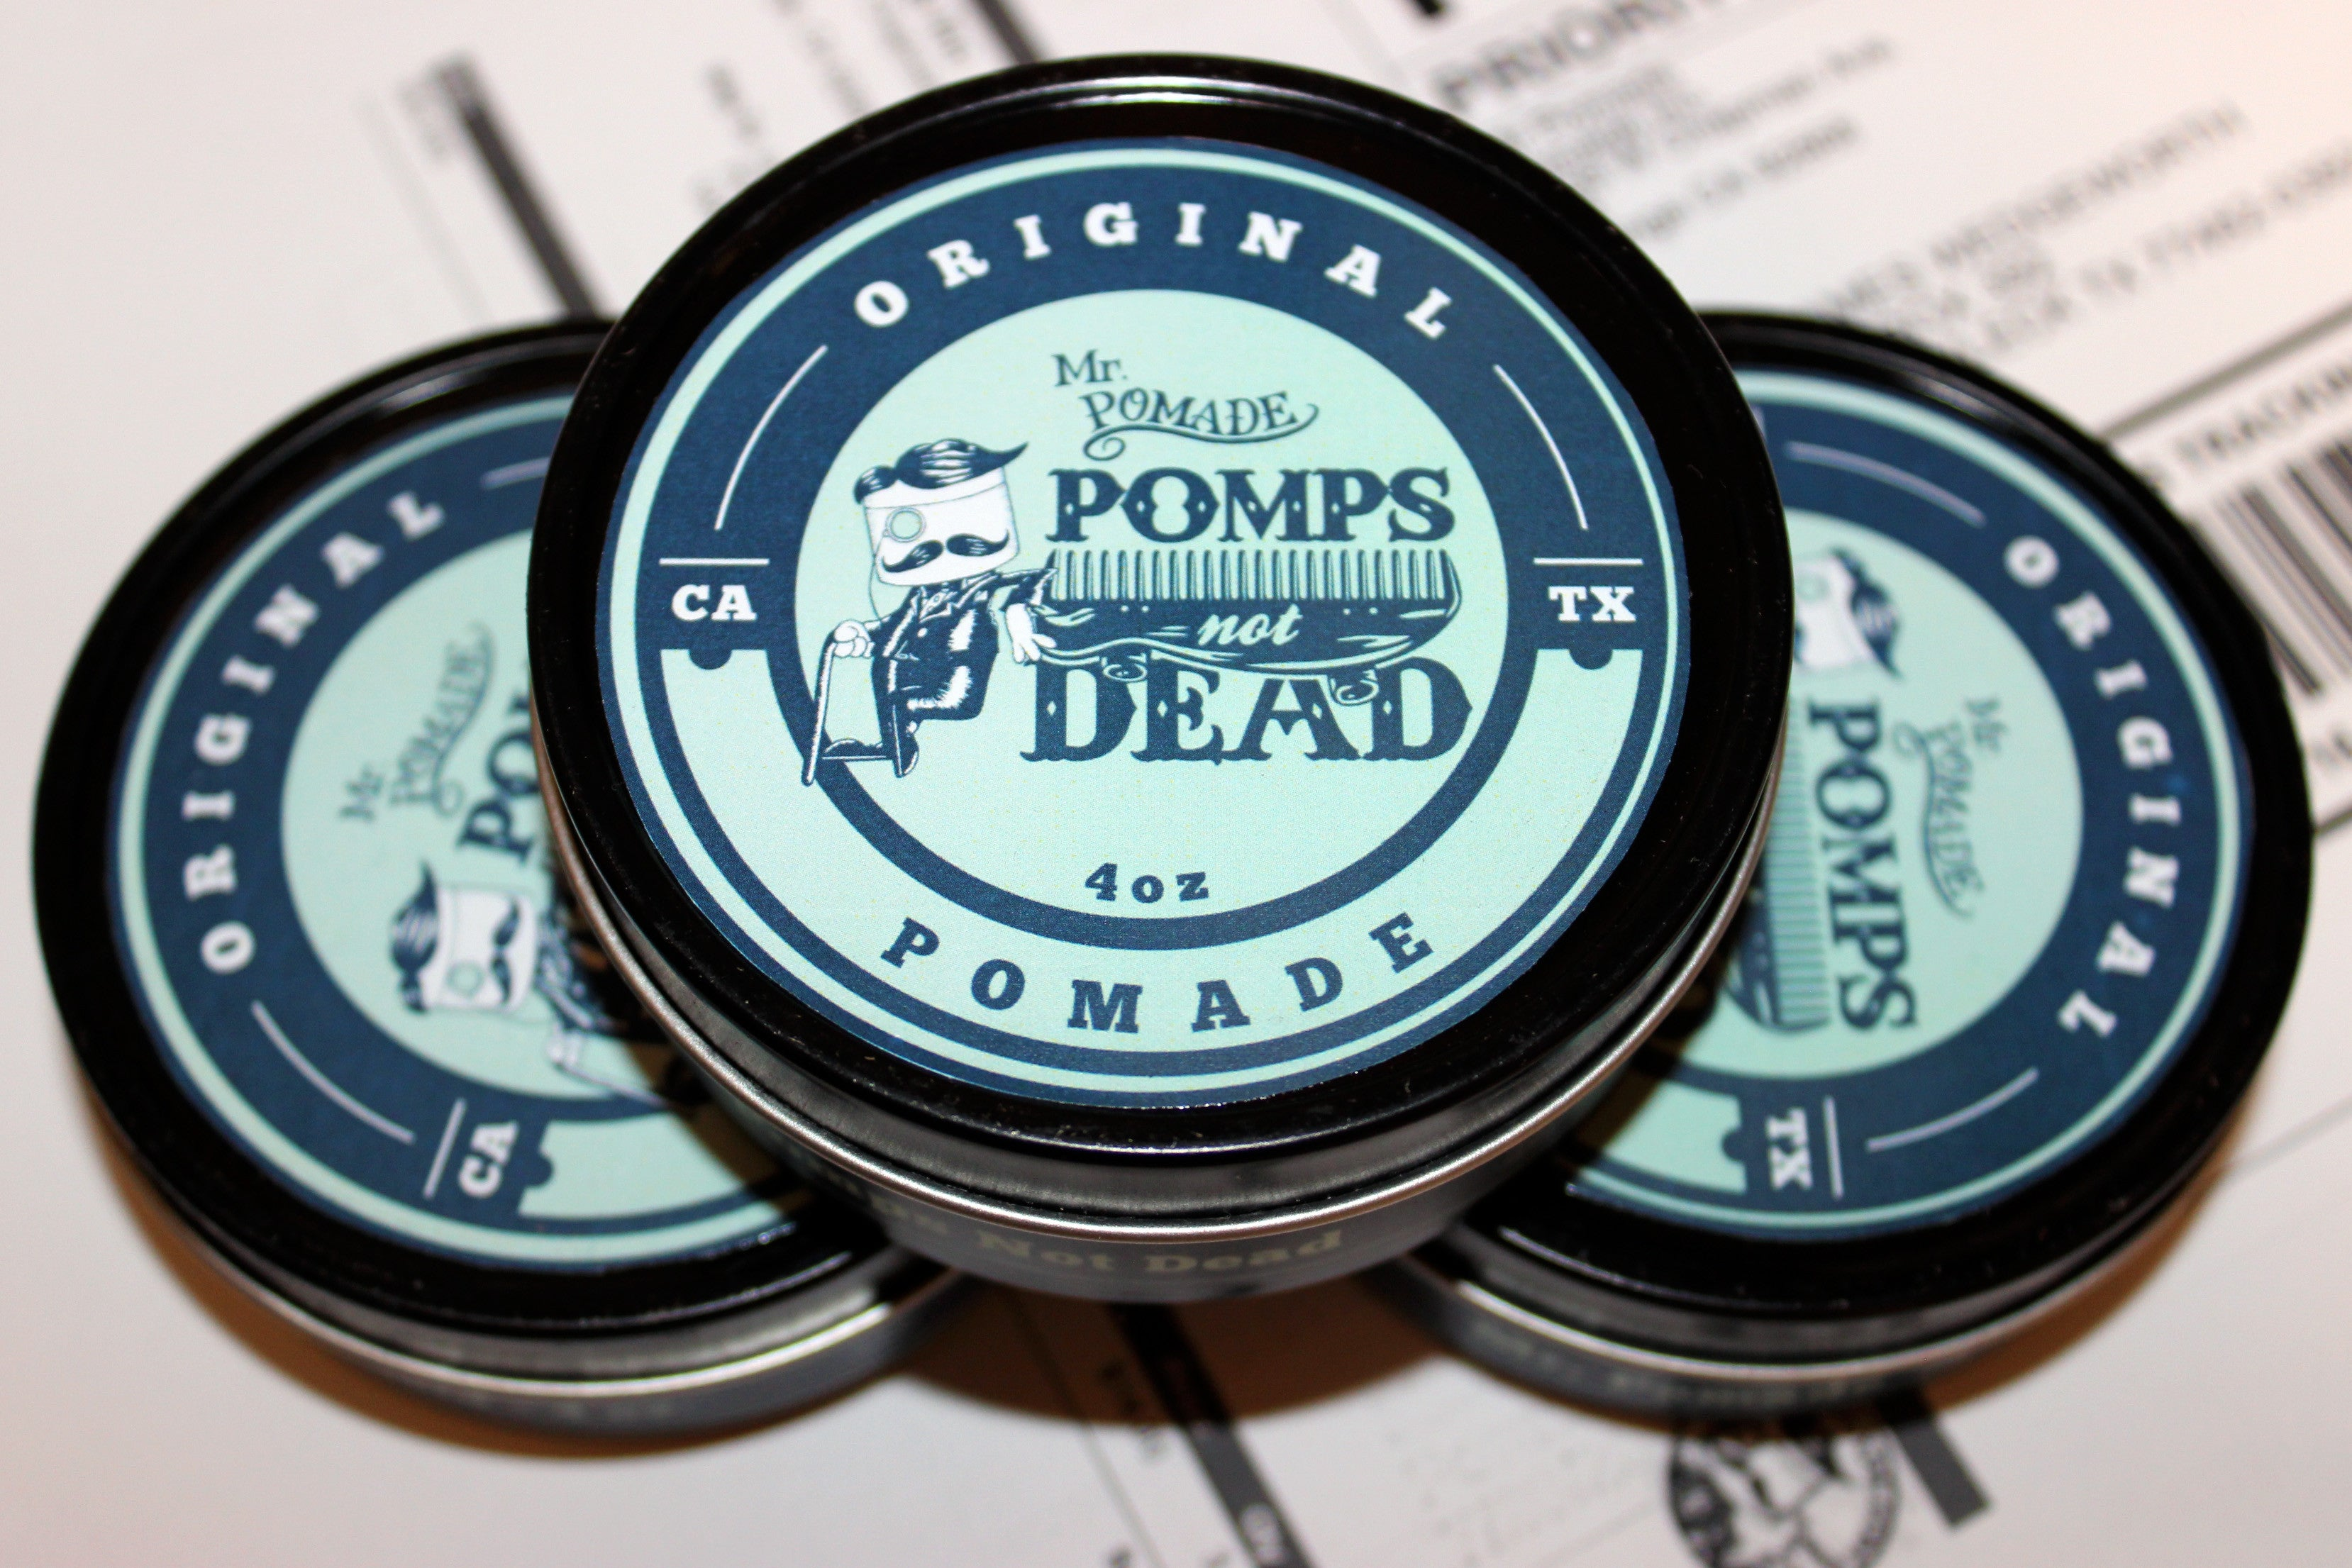 Pomps Not Dead Mr. Pomade collaboration